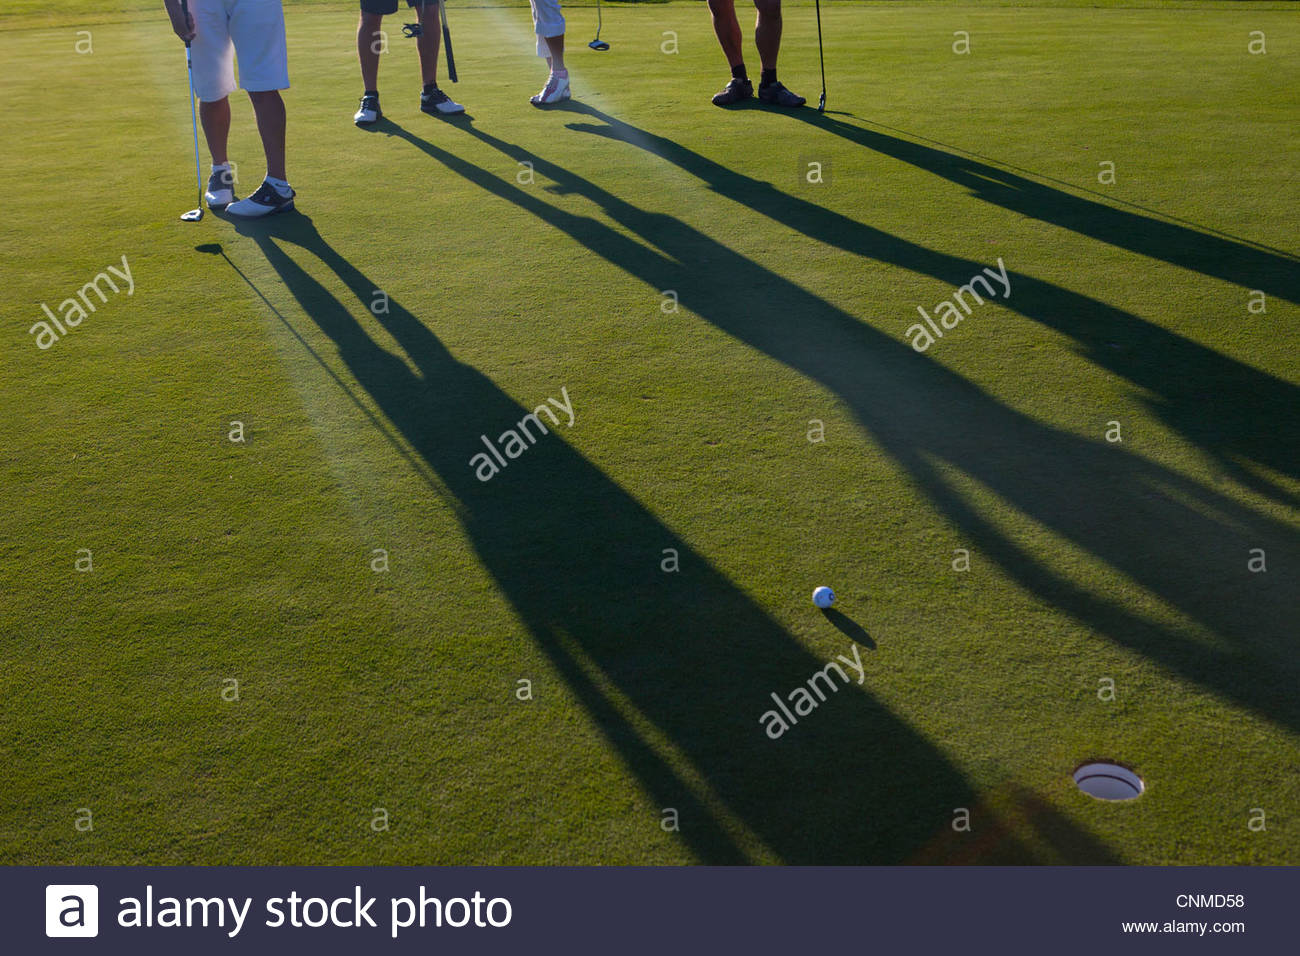 Four golfers on a green, putting the ball - Stock Image